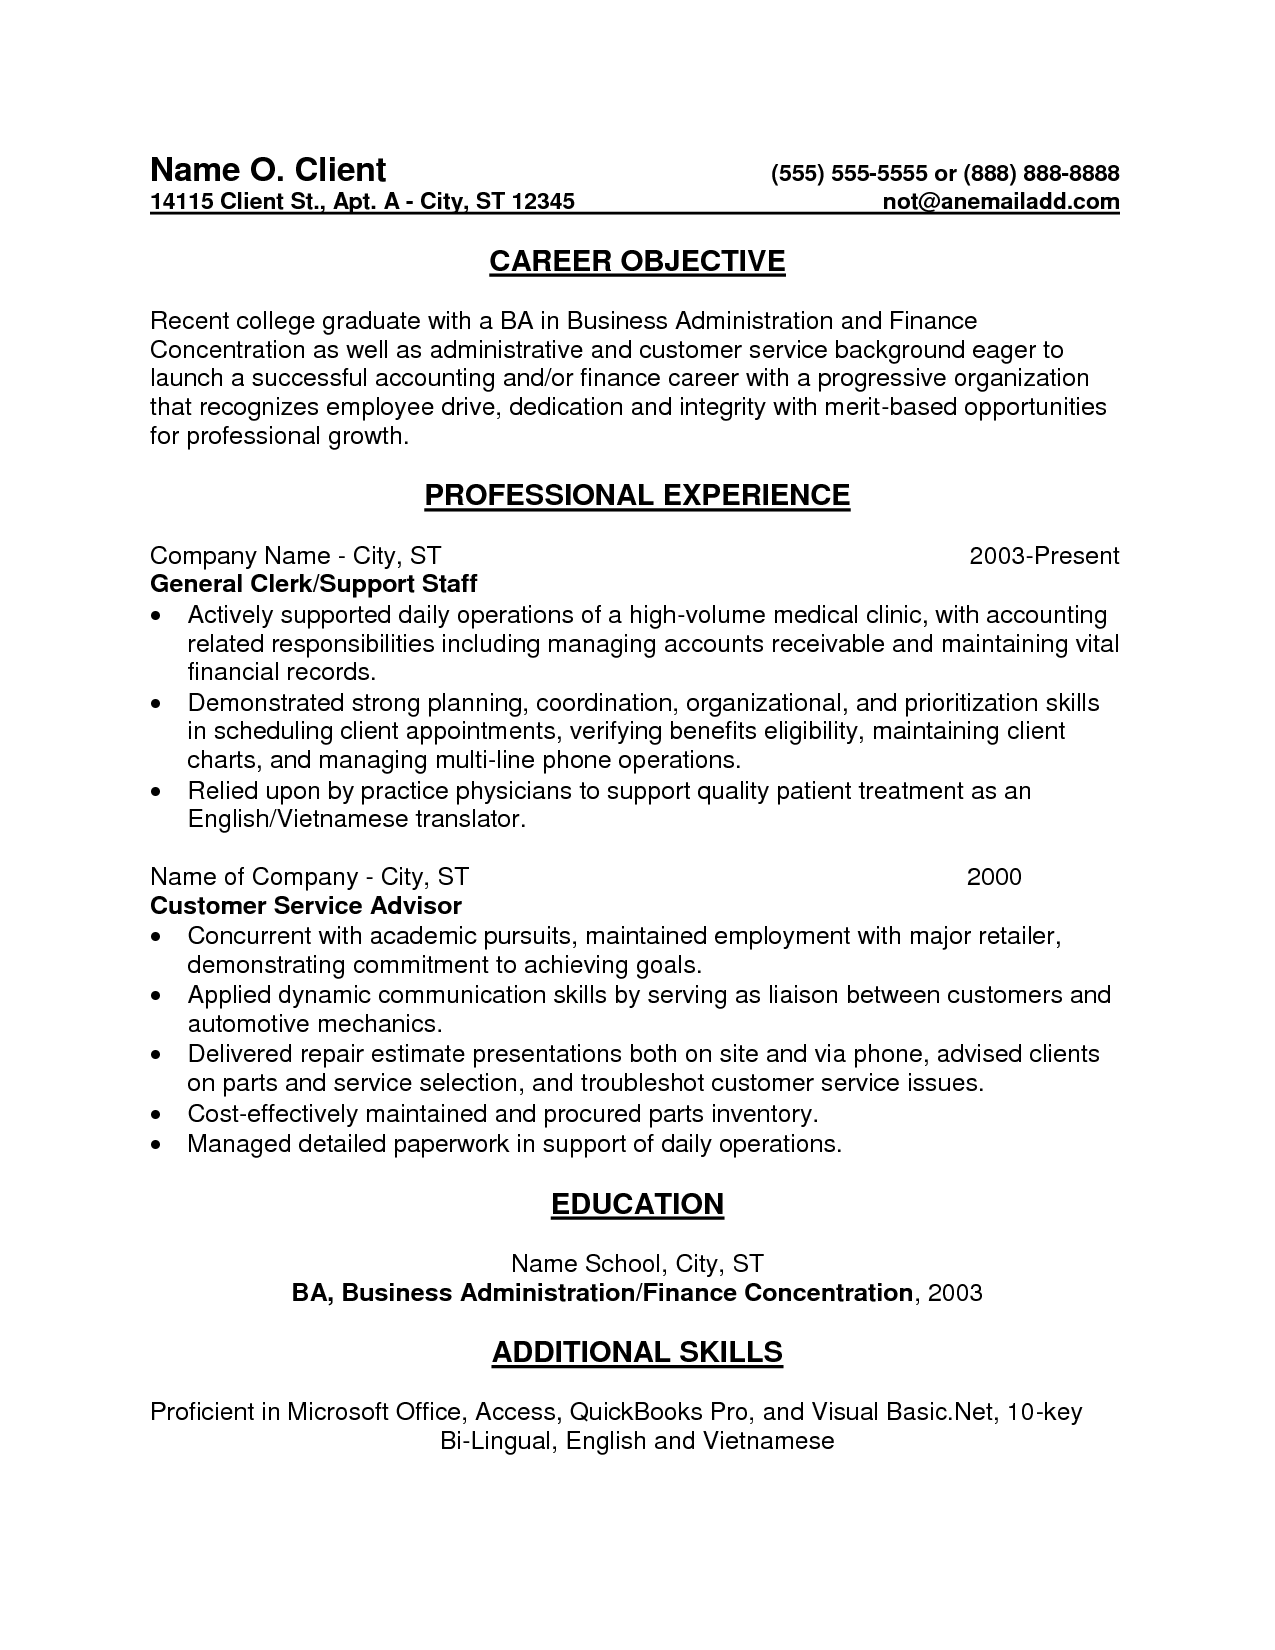 Resume Entry Level Objective Examples